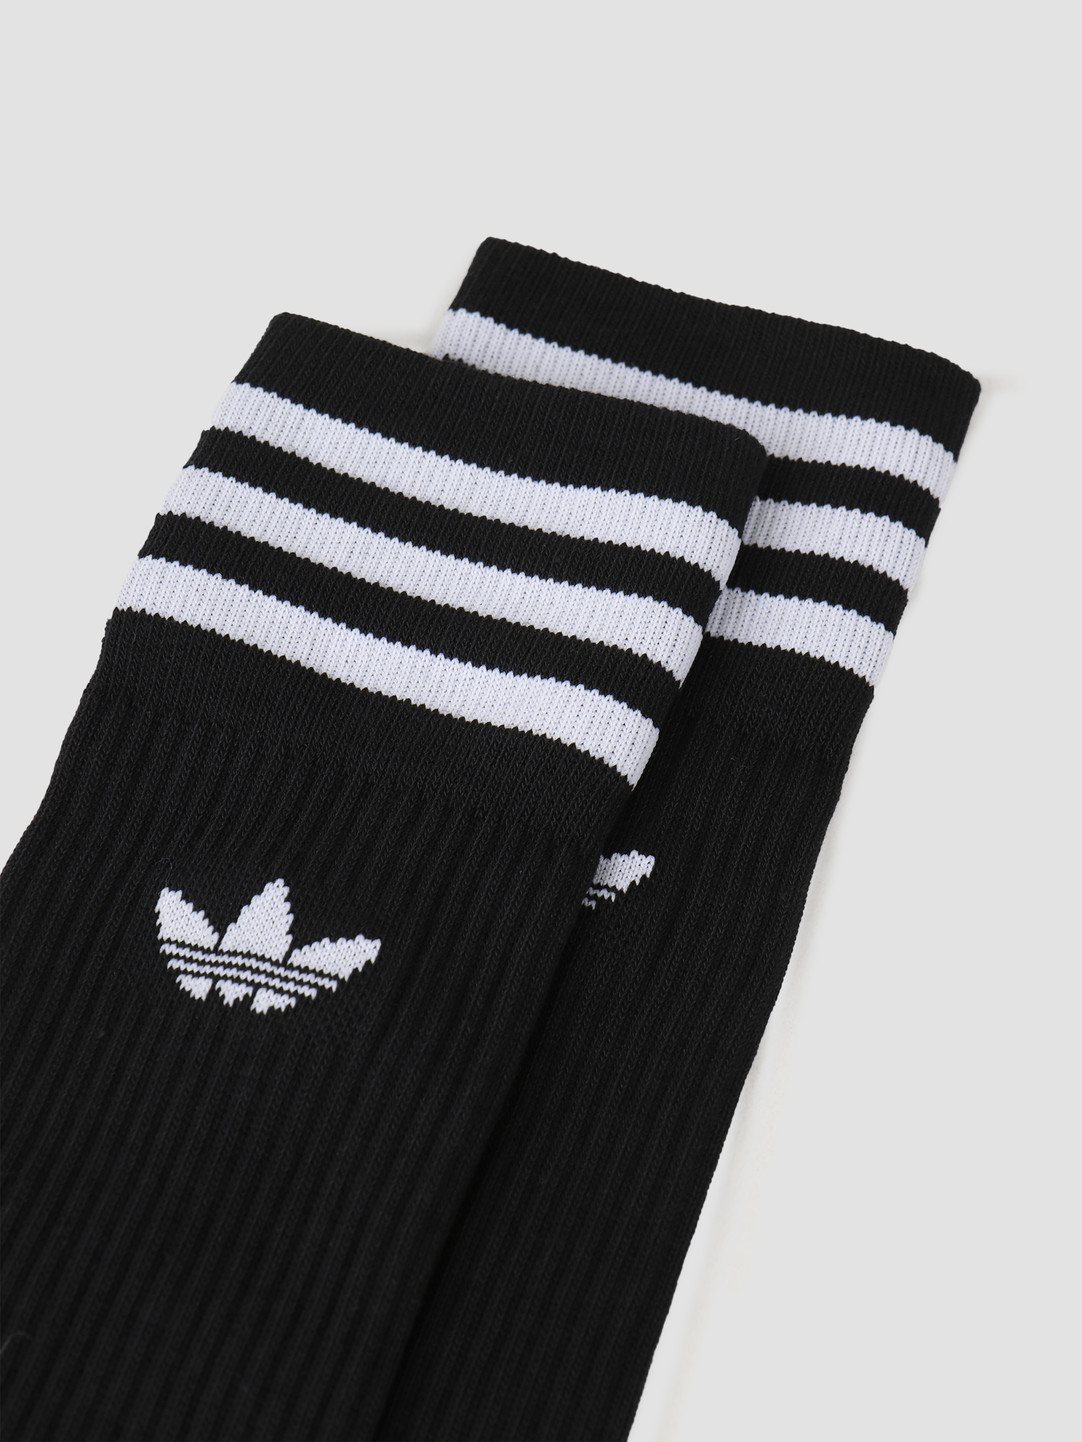 adidas adidas Solid Crew Sock Black White S21490